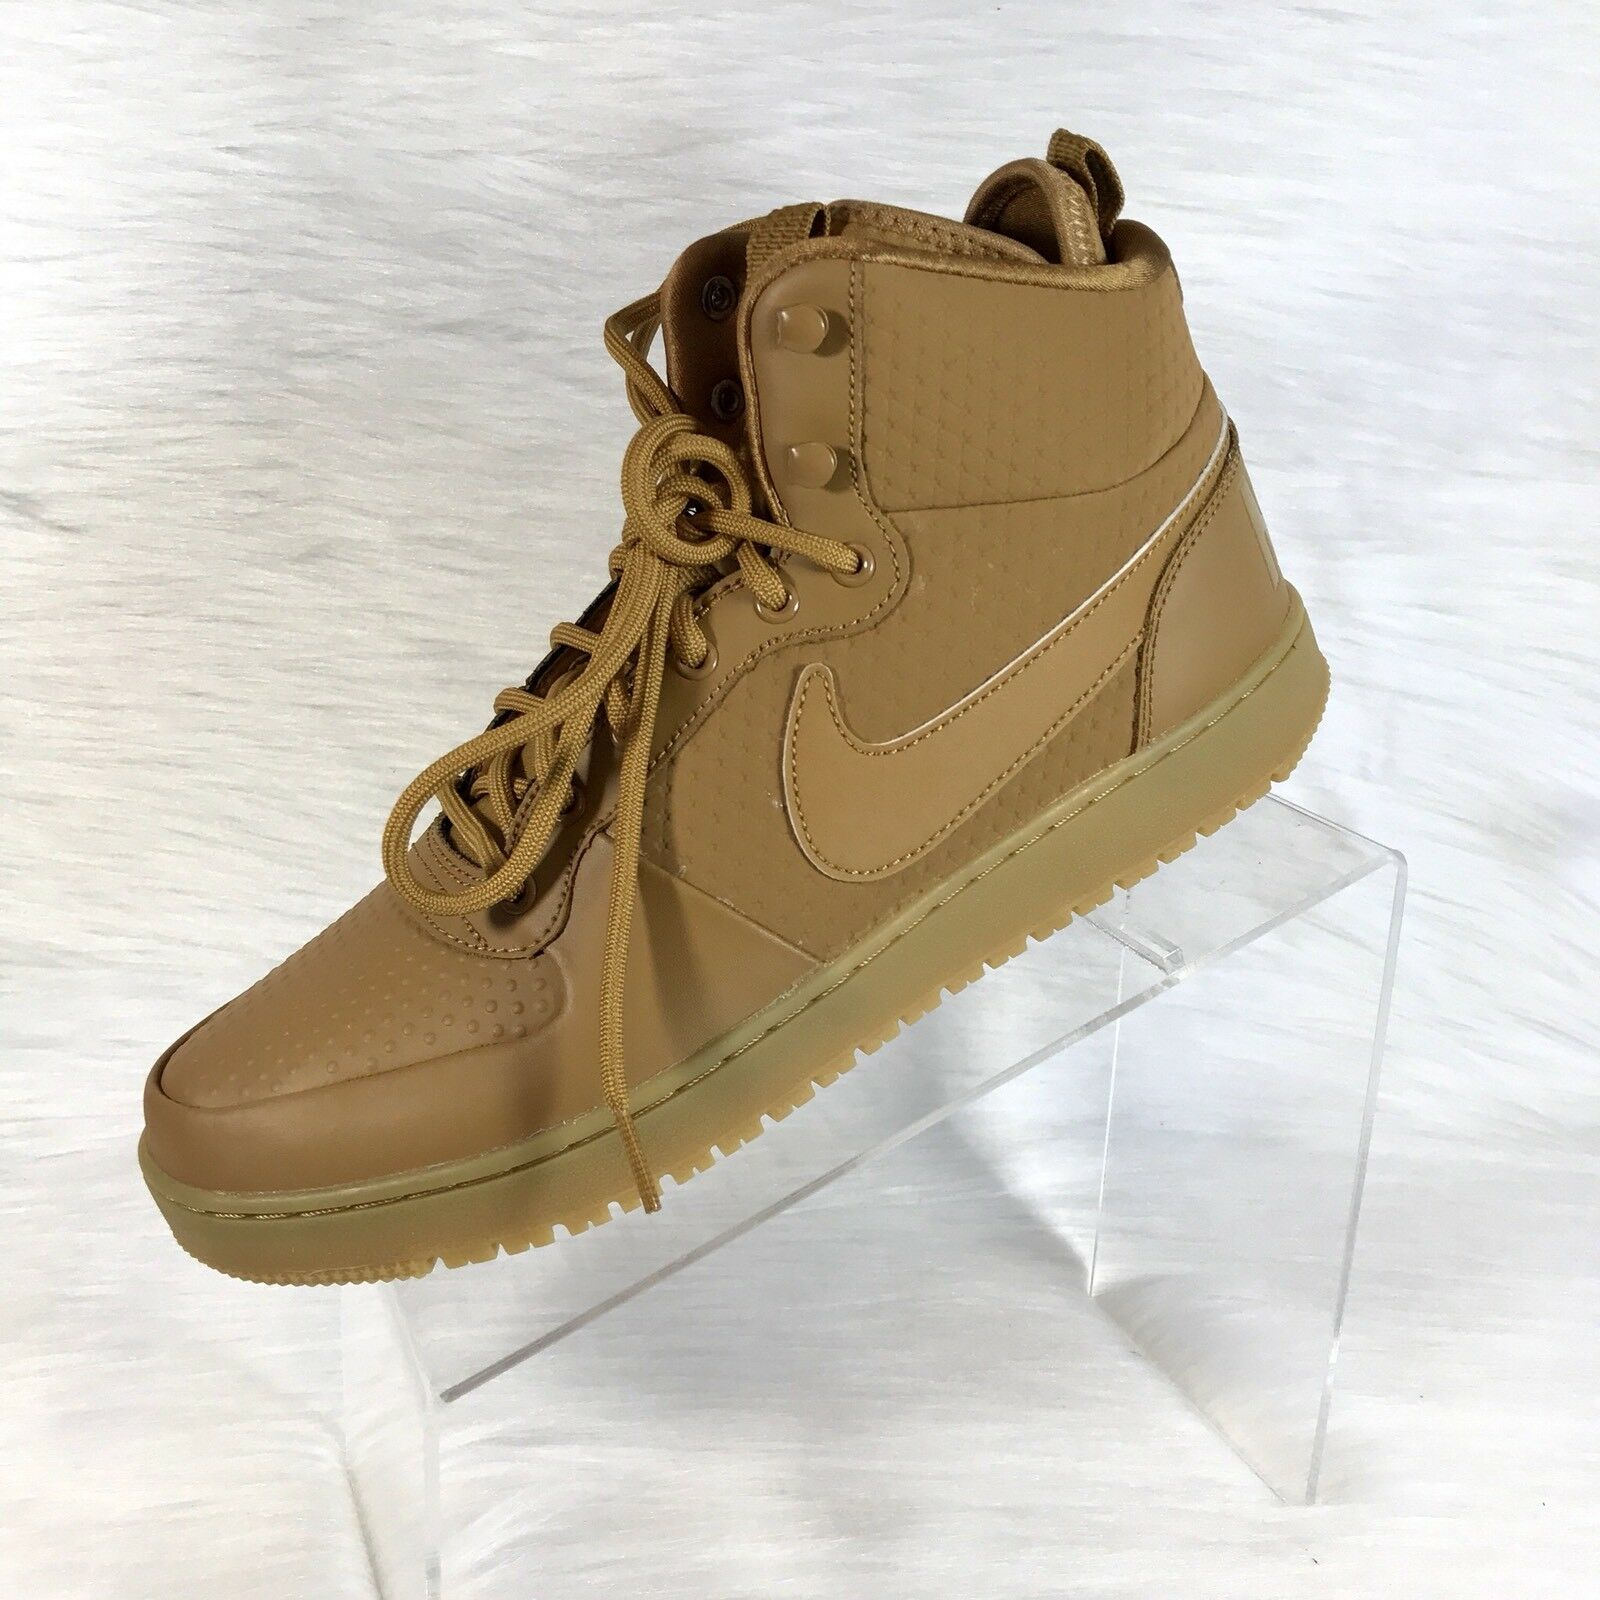 Cheap and beautiful fashion Nike Court Borough Mid Winter Mens Basketball Shoes AA0547-700 Wheat Leather 10